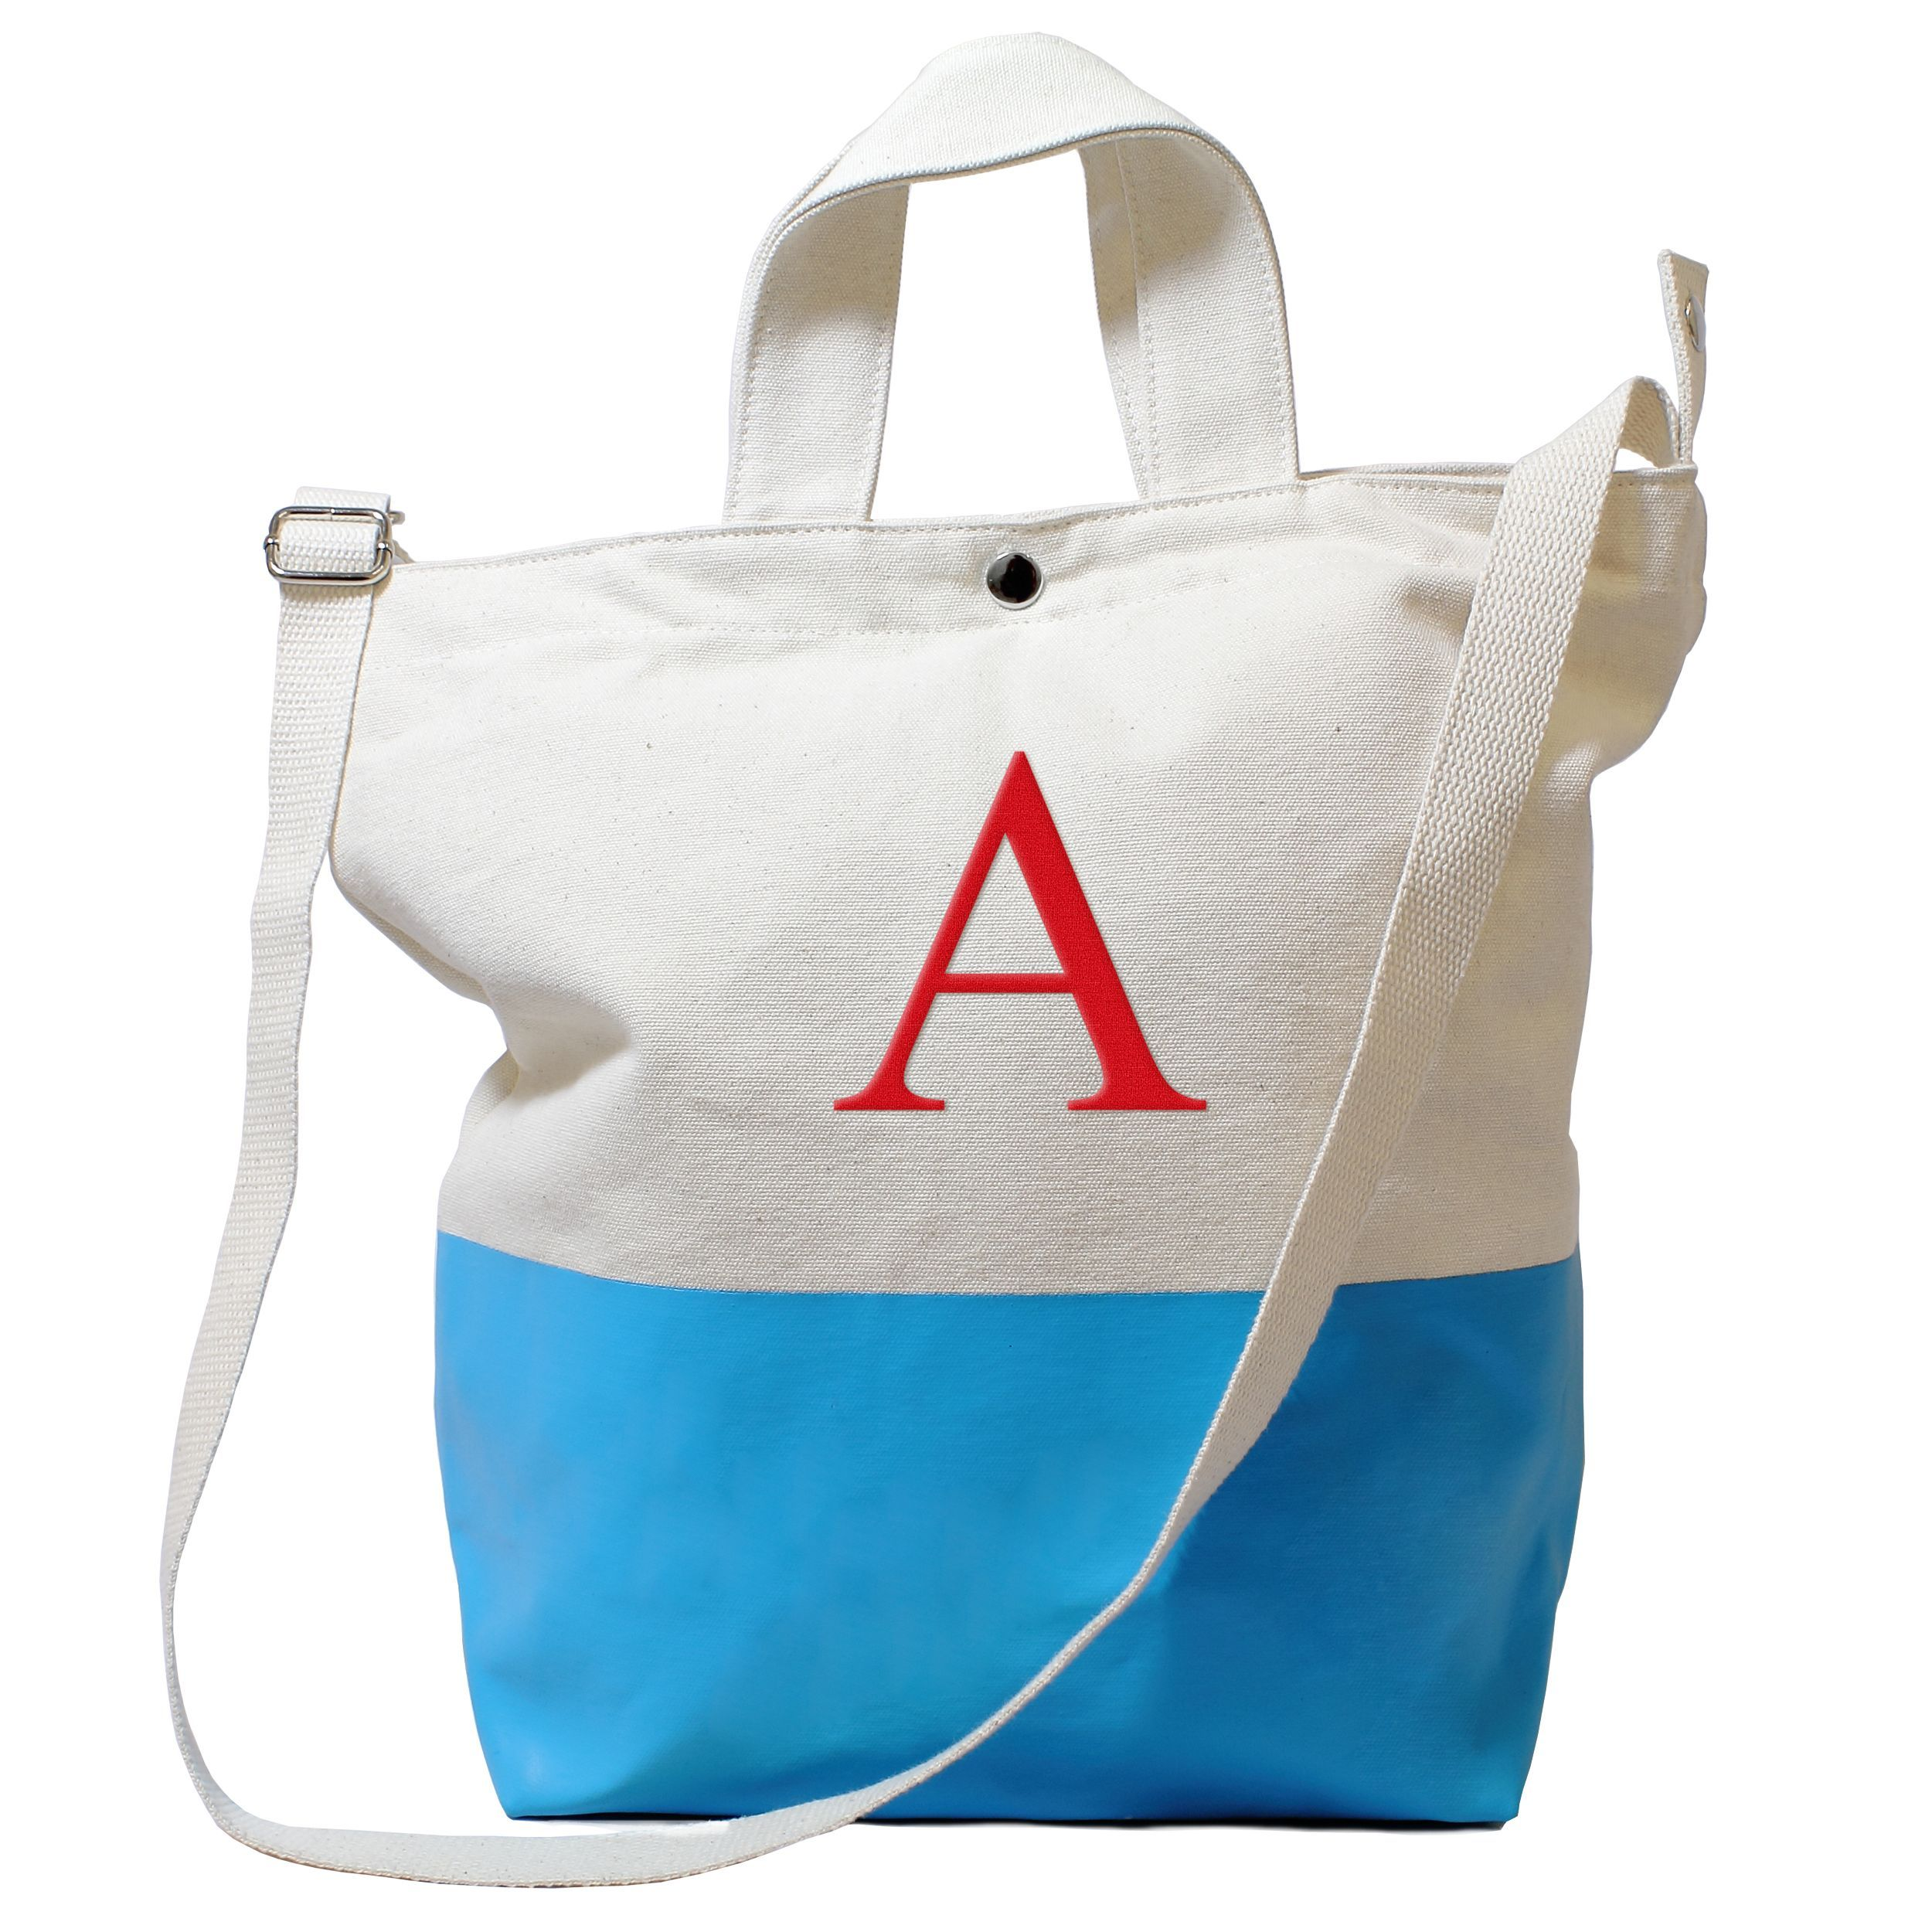 One of today's hottest bag for the modern girl on the go, this matte aqua latex-dipped natural canvas tote bag is a flawless combination of form and function. The oversized shoulder bag features two wide carrier handles for comfort.